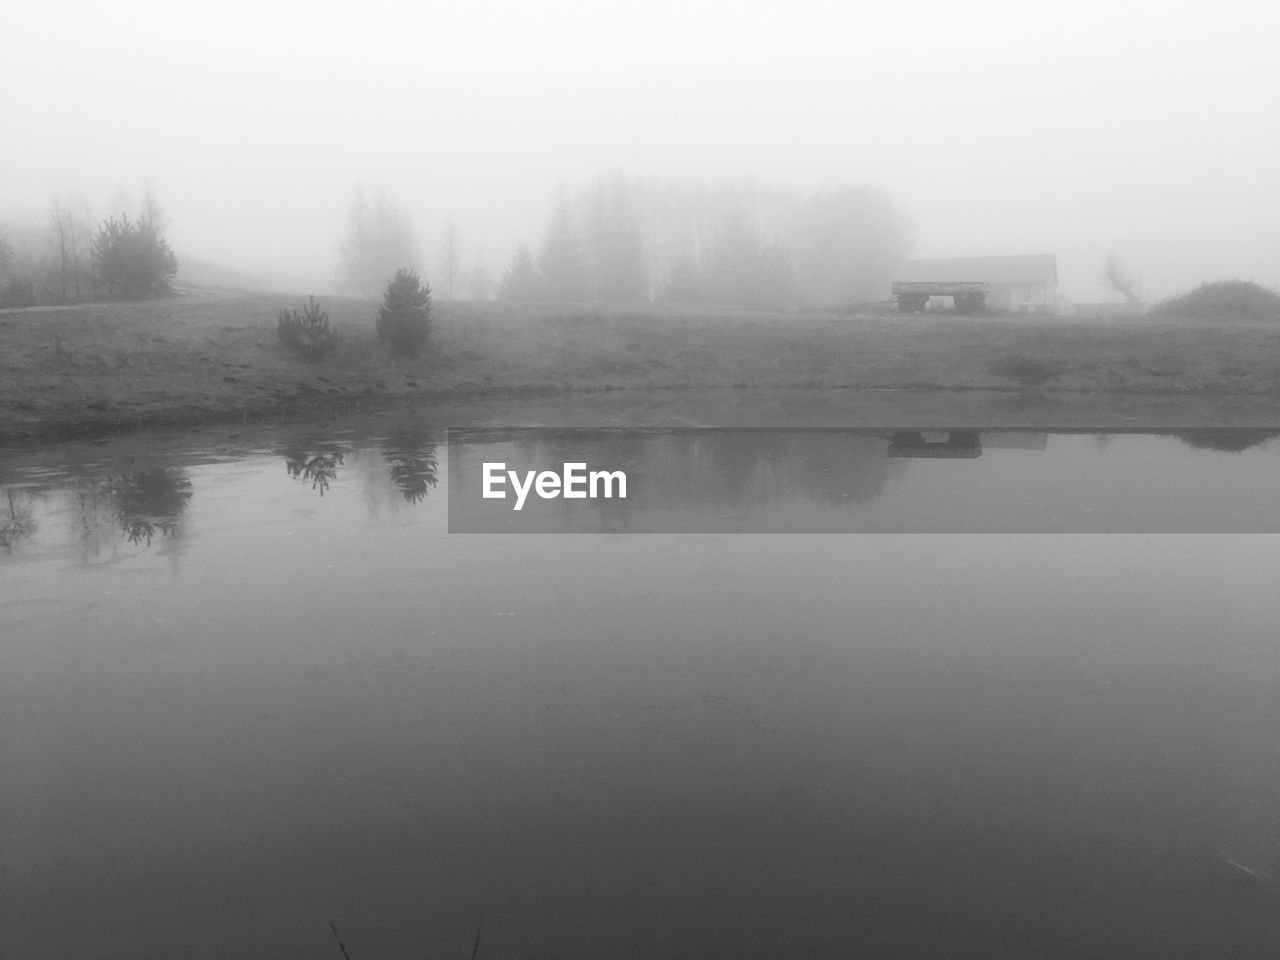 fog, foggy, mist, nature, tranquil scene, no people, weather, tranquility, water, reflection, outdoors, hazy, scenics, beauty in nature, tree, day, landscape, cold temperature, dawn, sky